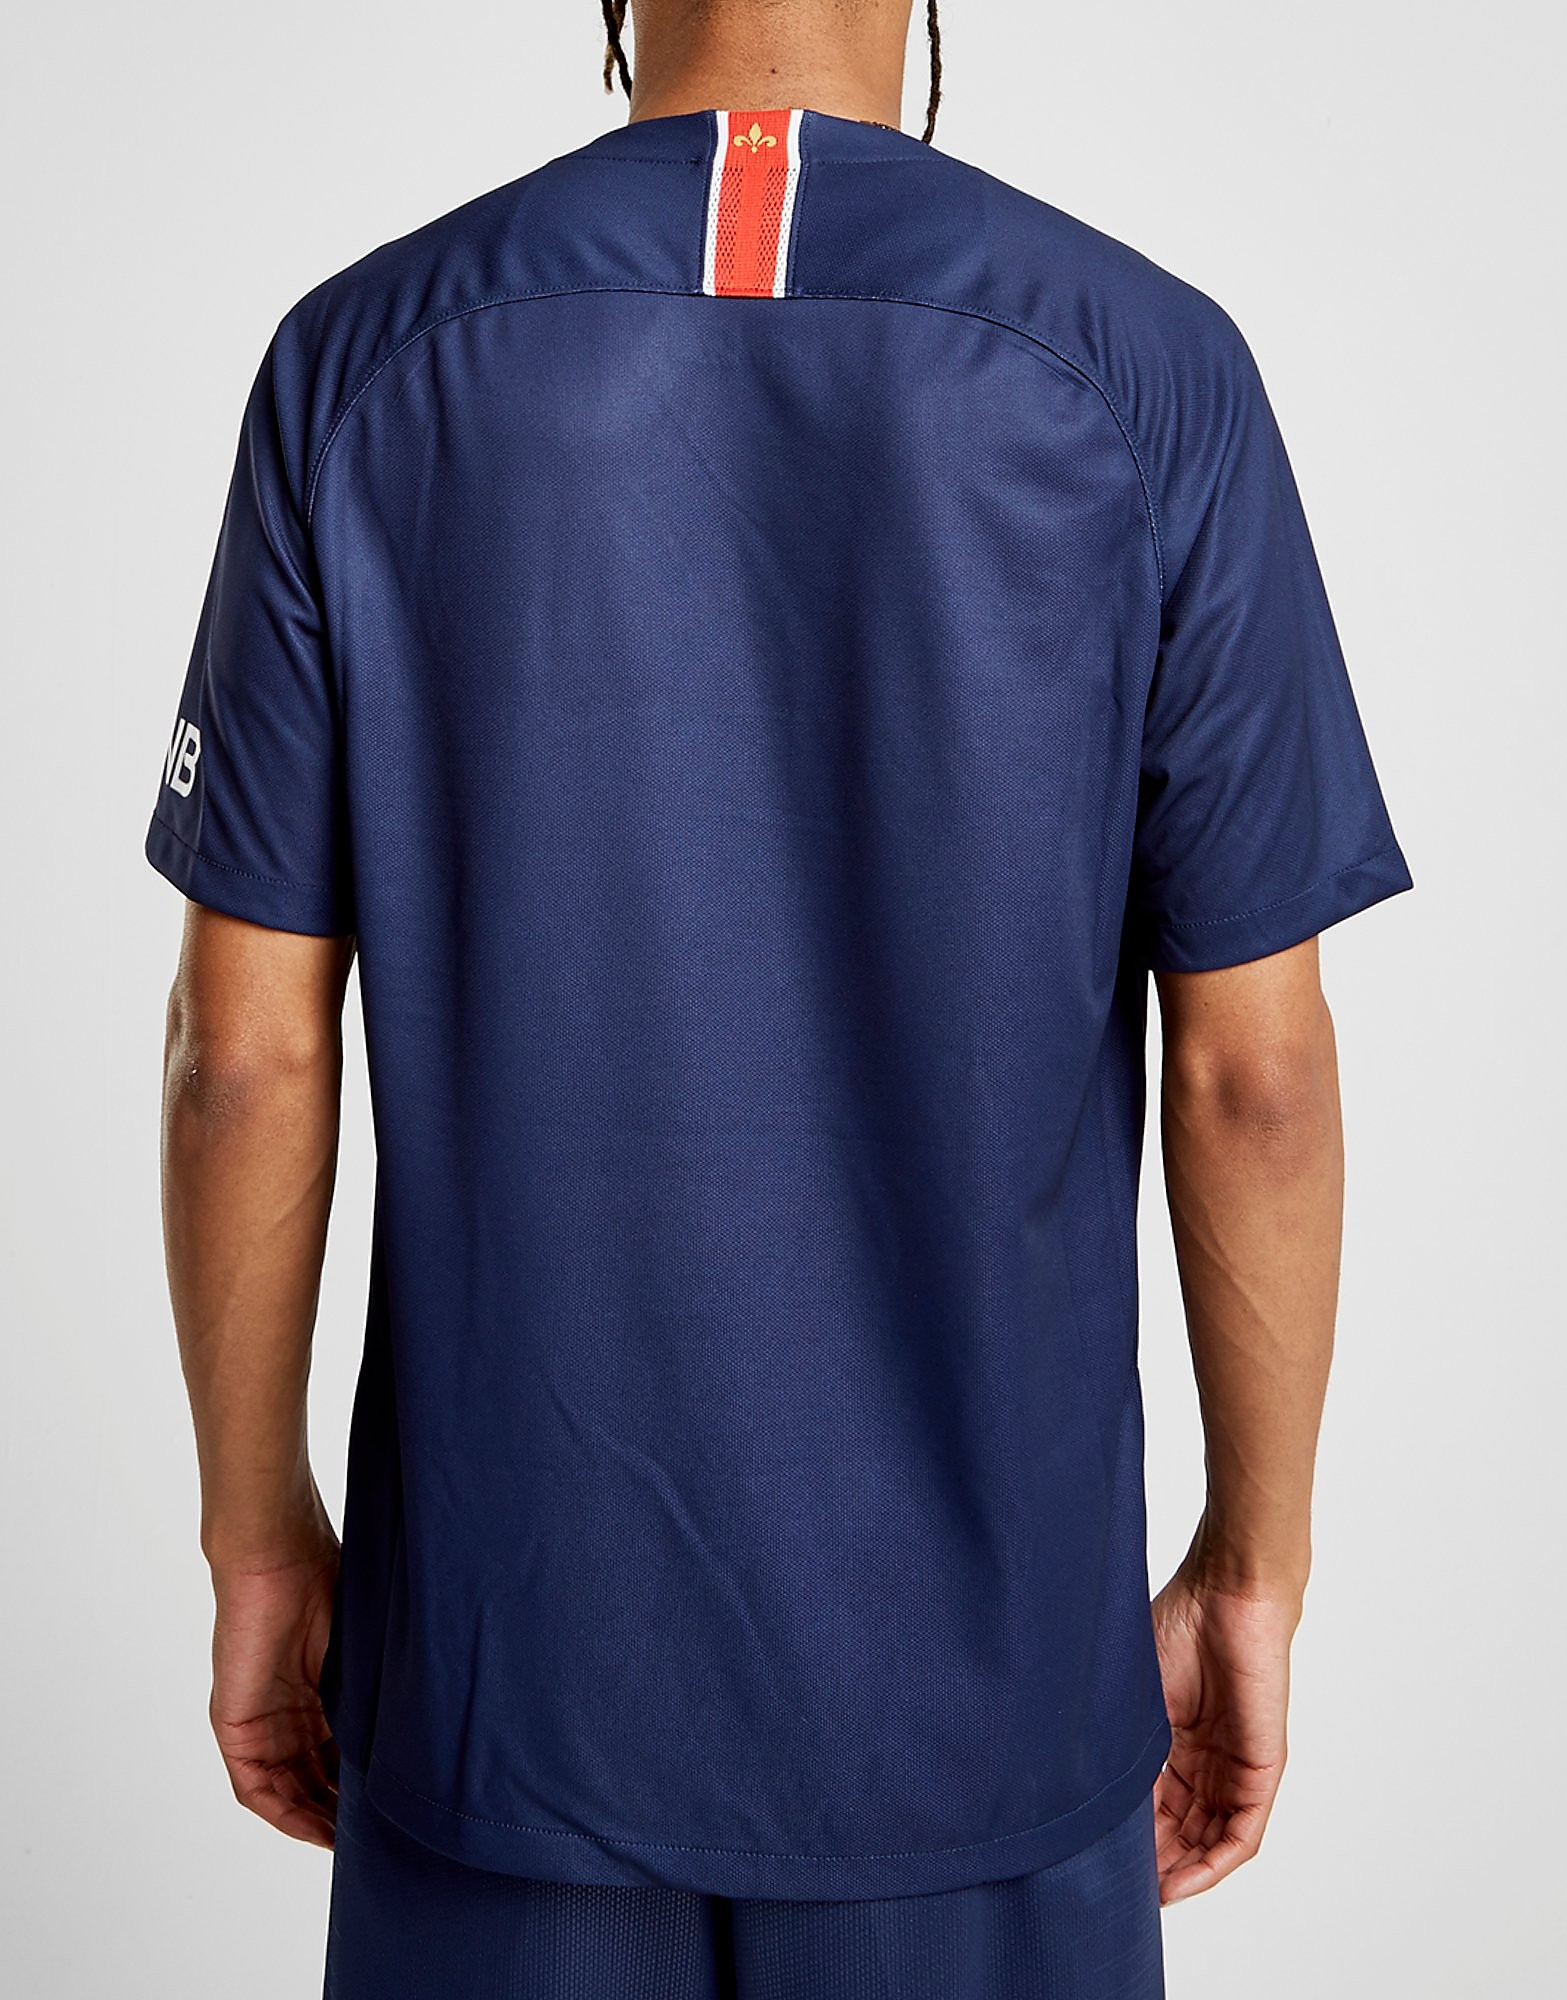 Nike Paris Saint Germain 2018/19 Home Shirt